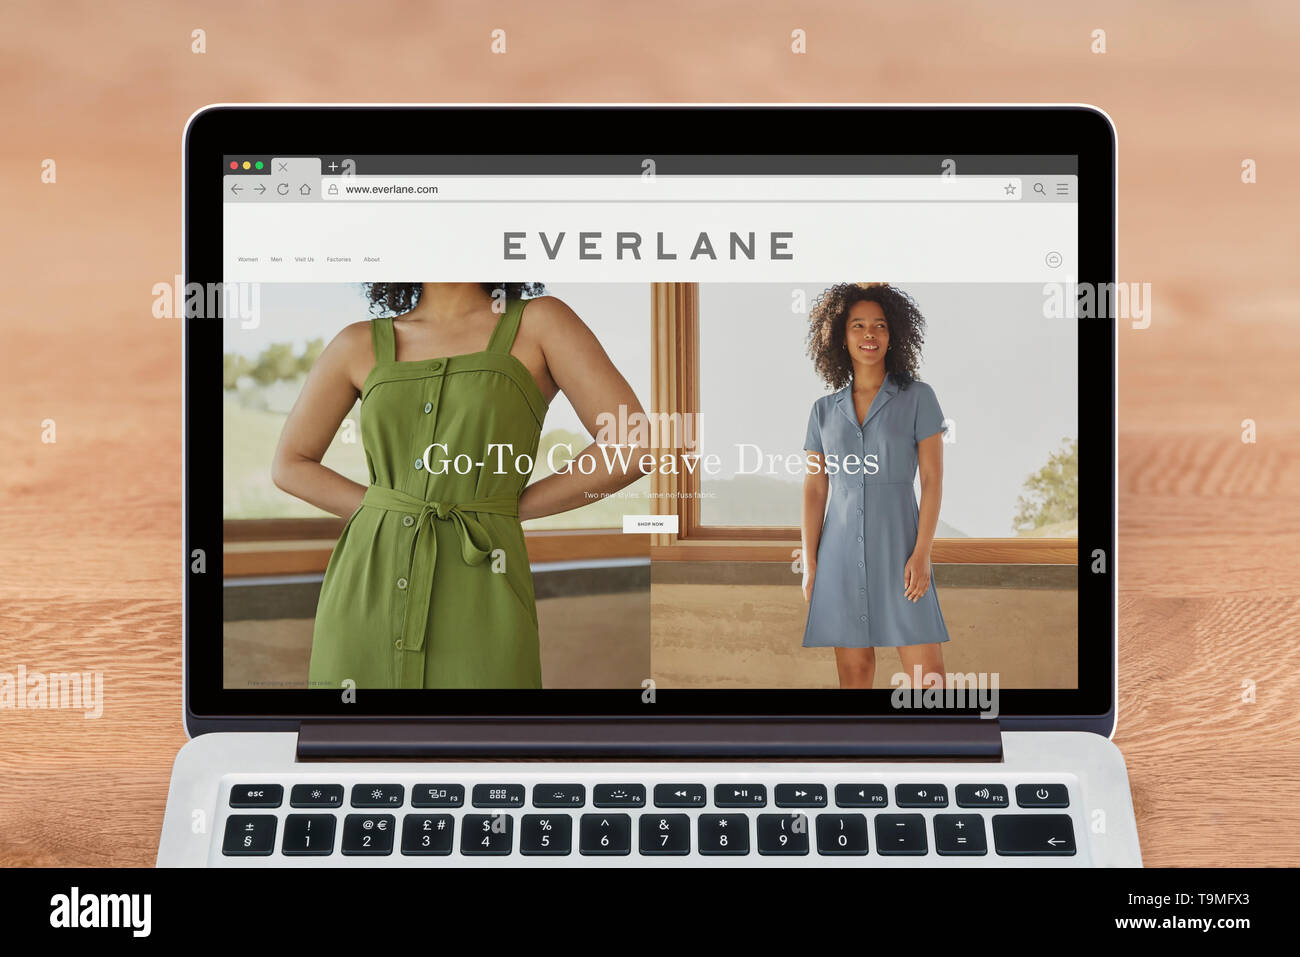 An Apple Macbook displays the Everlane website (Editorial use only). - Stock Image